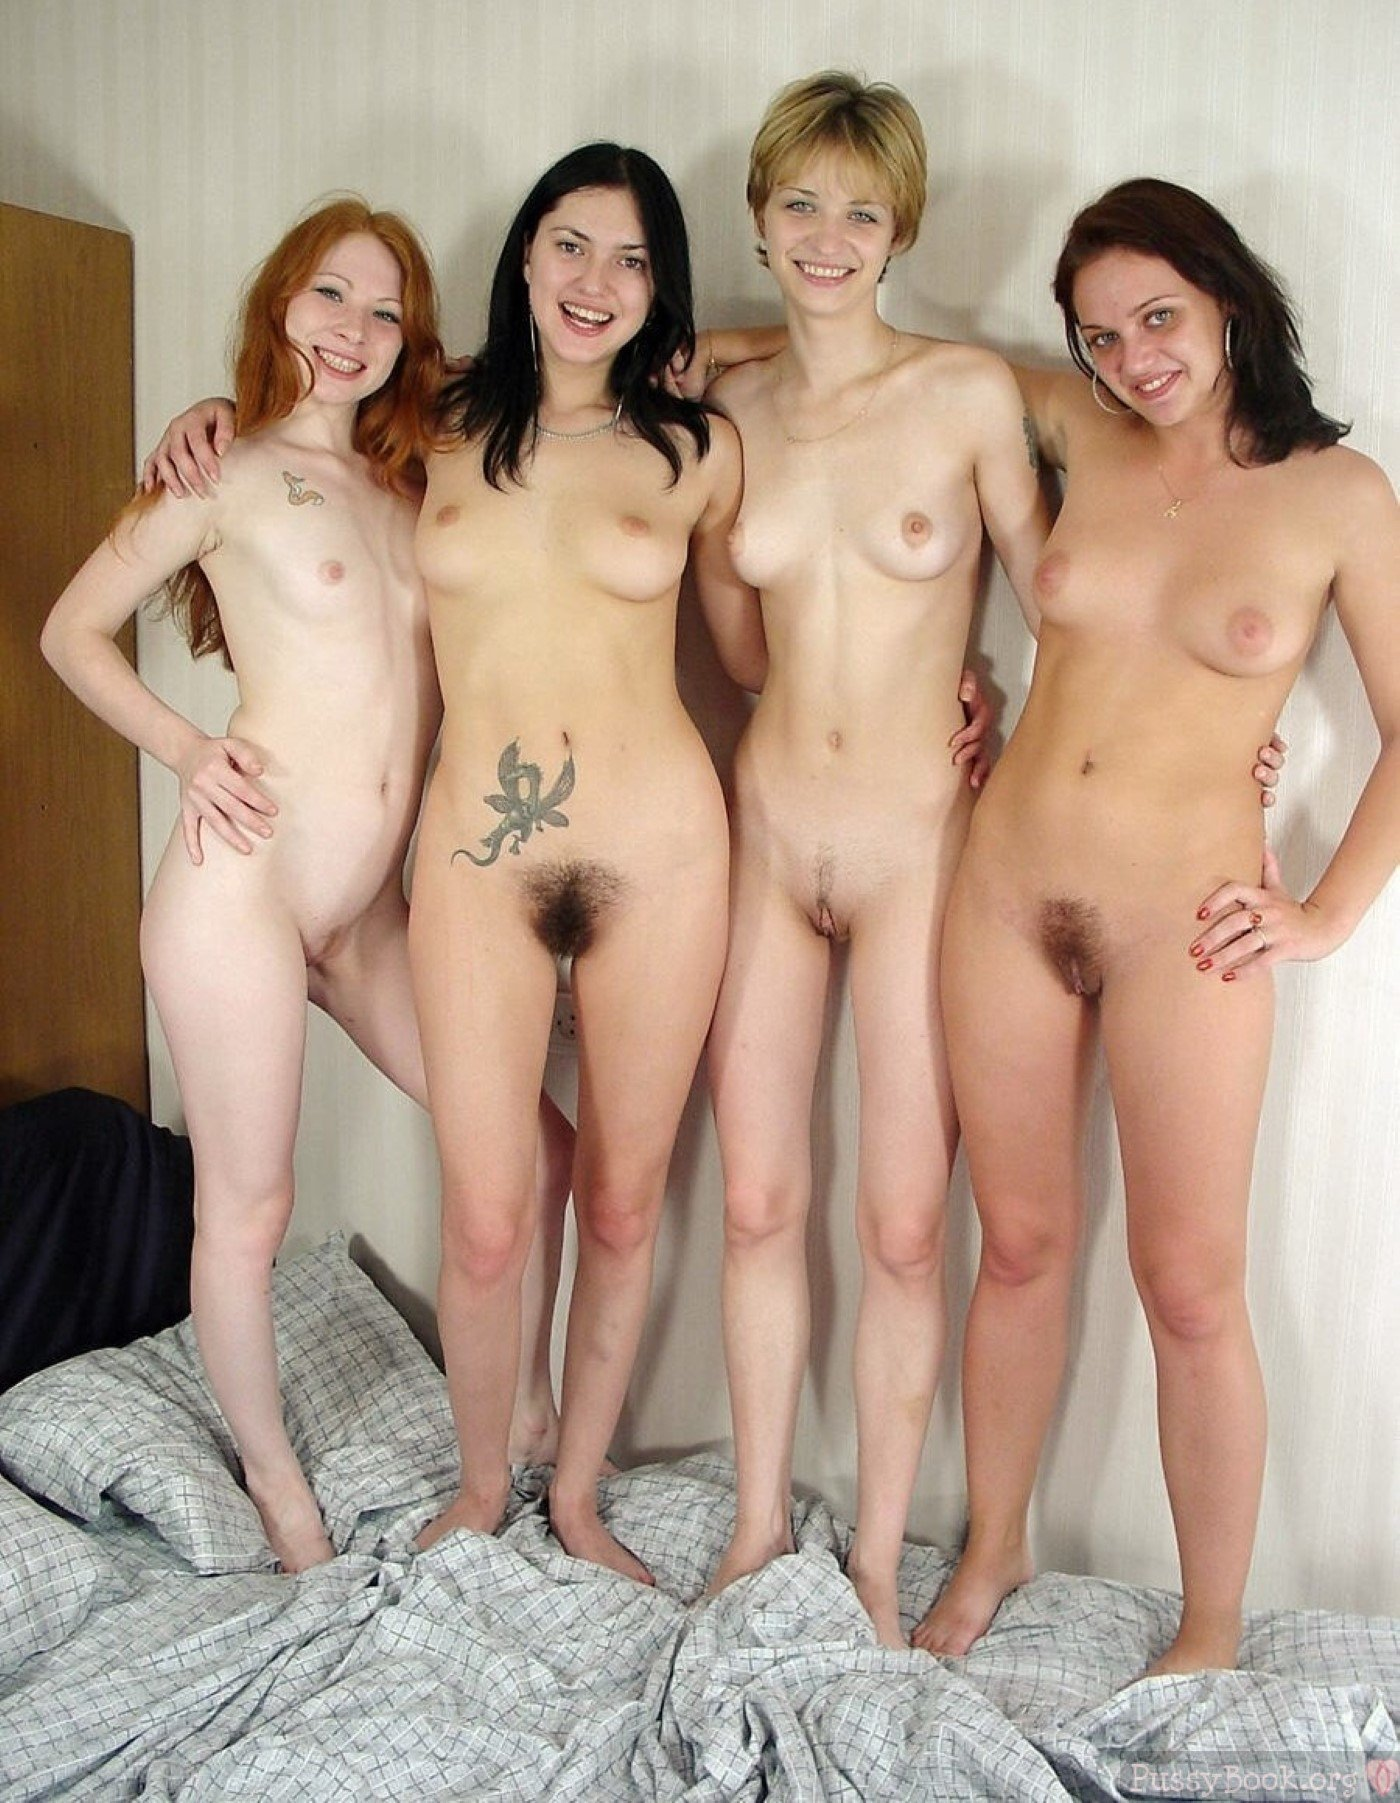 Group-Of-Four-Naked-Girlfriends-Posing  Pussy Pictures -5485